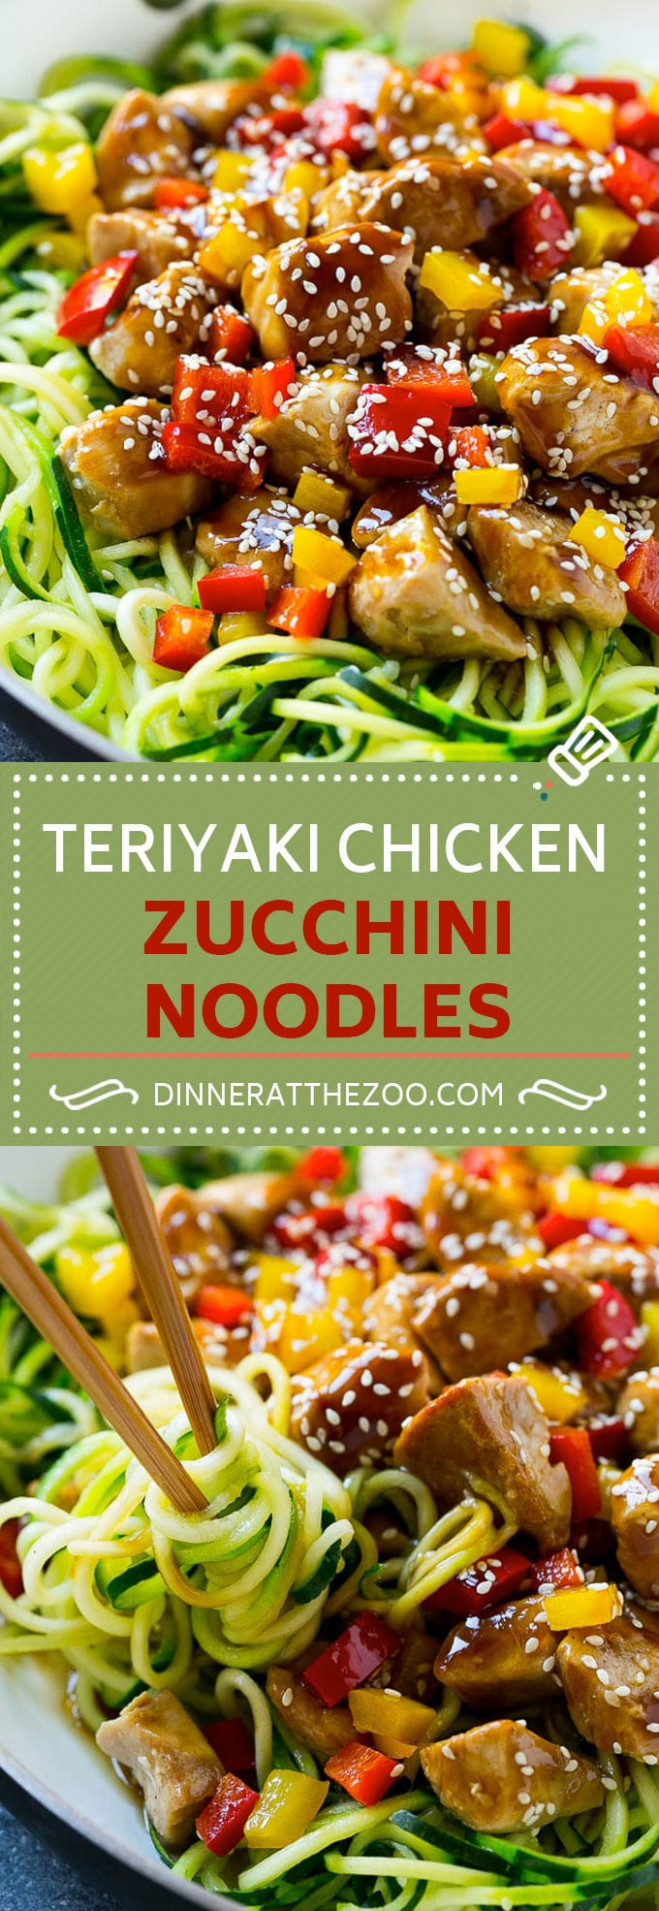 13 Healthy Zoodle (Zucchini Noodle) Recipes - Dinner At The Zoo - Zoodle Dinner Recipes